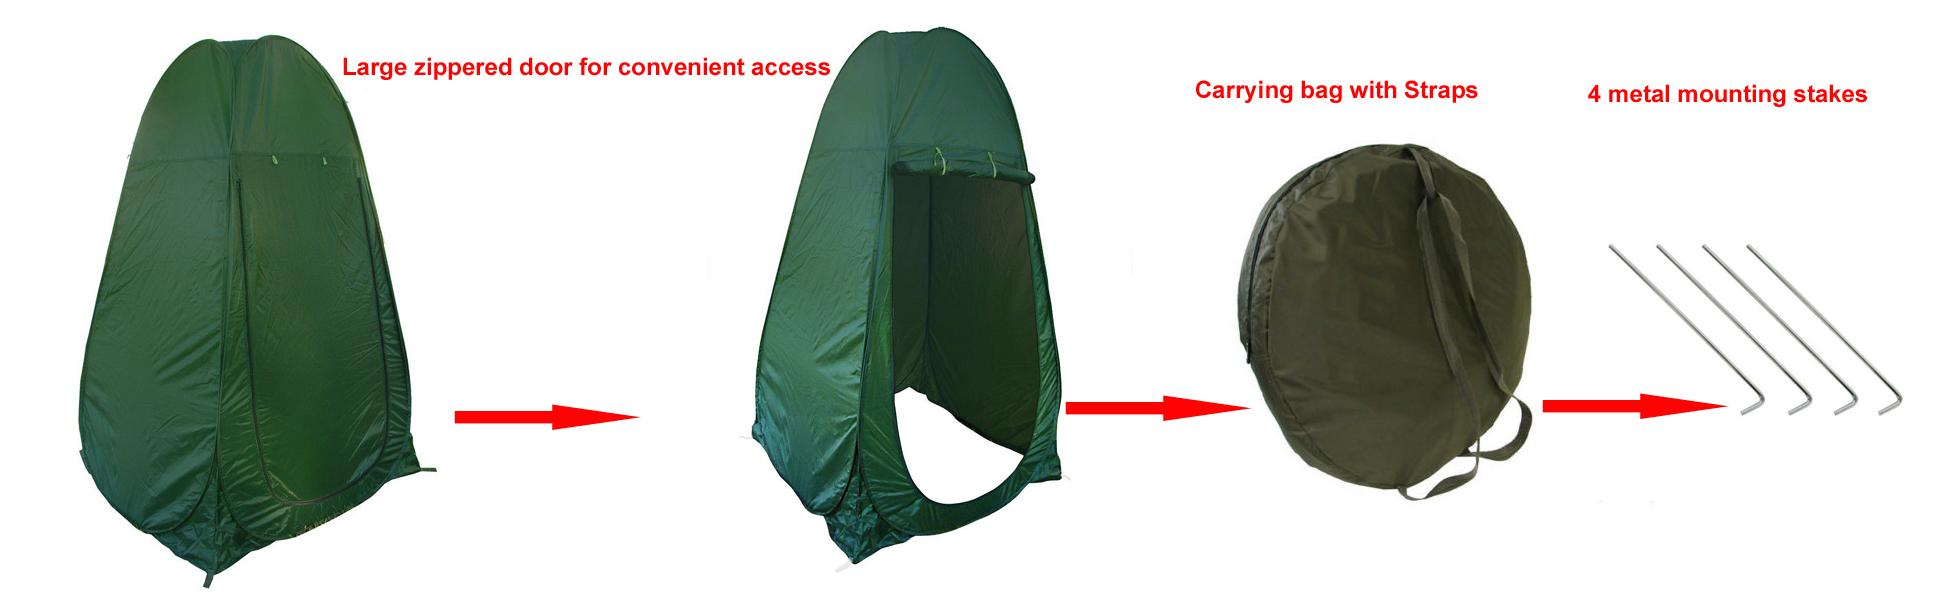 Outdoor Bathroom Tent Amazoncom Portable Pop Up Tent Camping Beach Toilet Shower